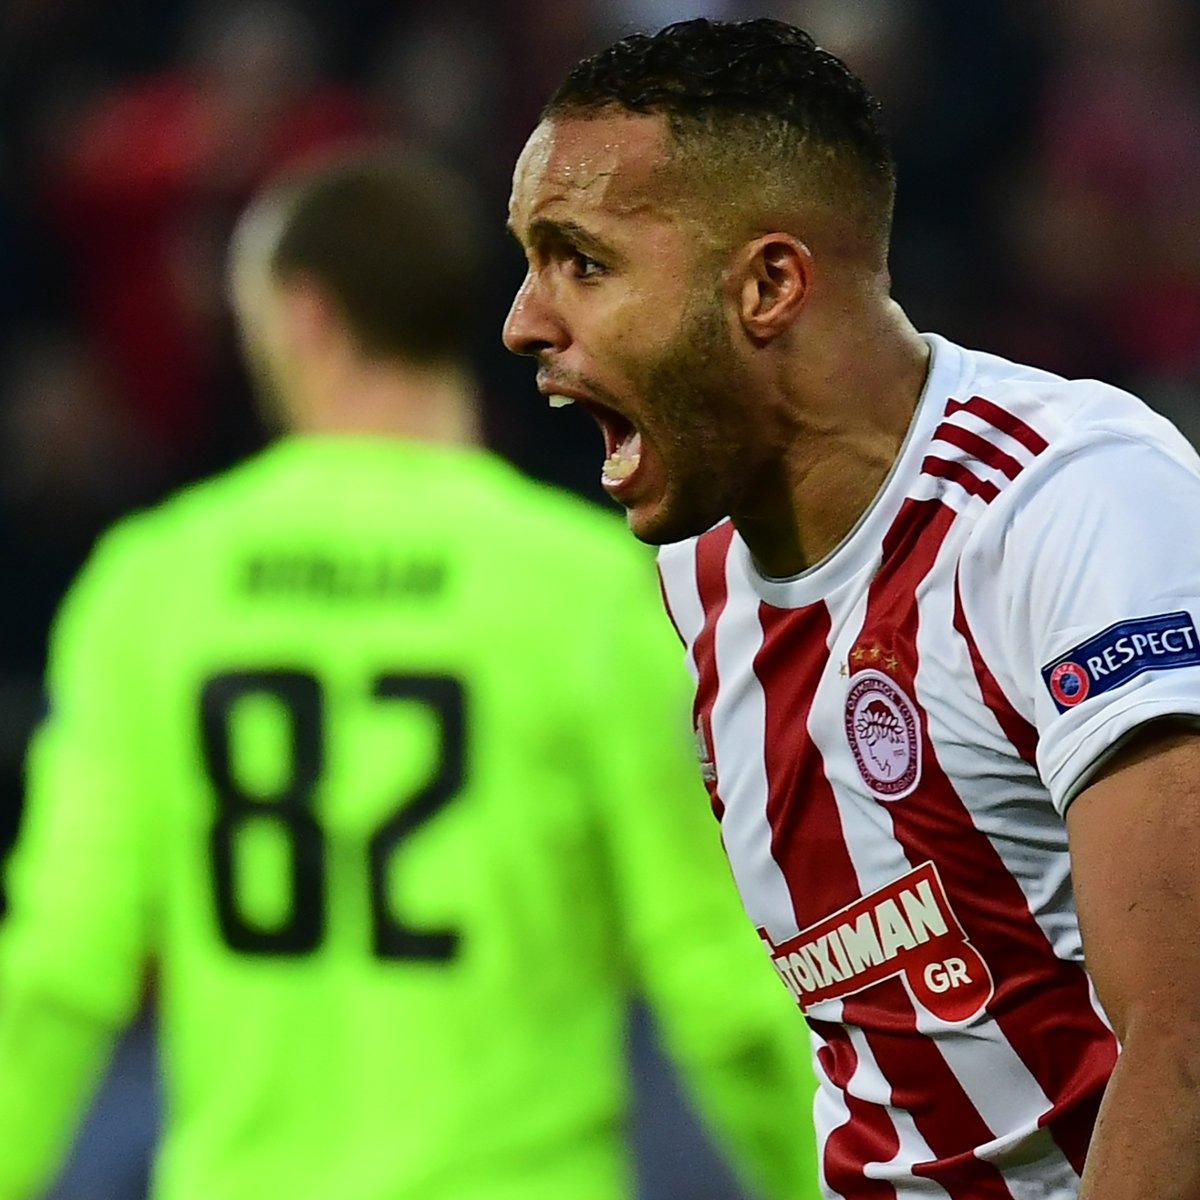 Youssef El Arabi has 10 goals in his last 7 games for Olympiacos (all competitions)    #UEL